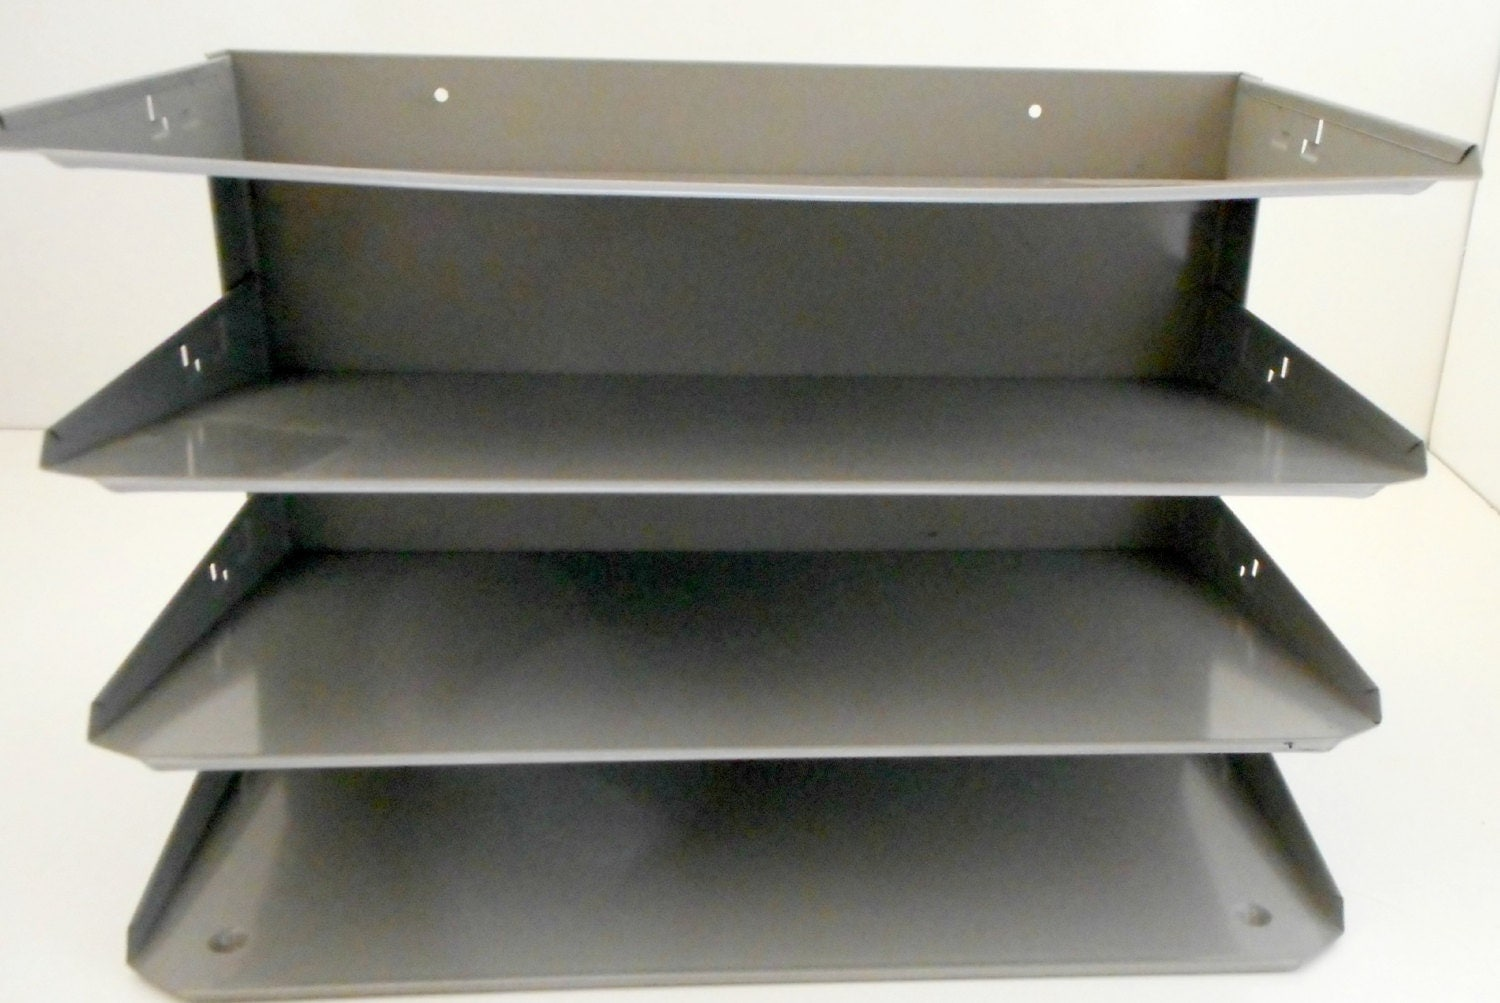 Industrial Metal File Organizer Holder for Wall Shelf or